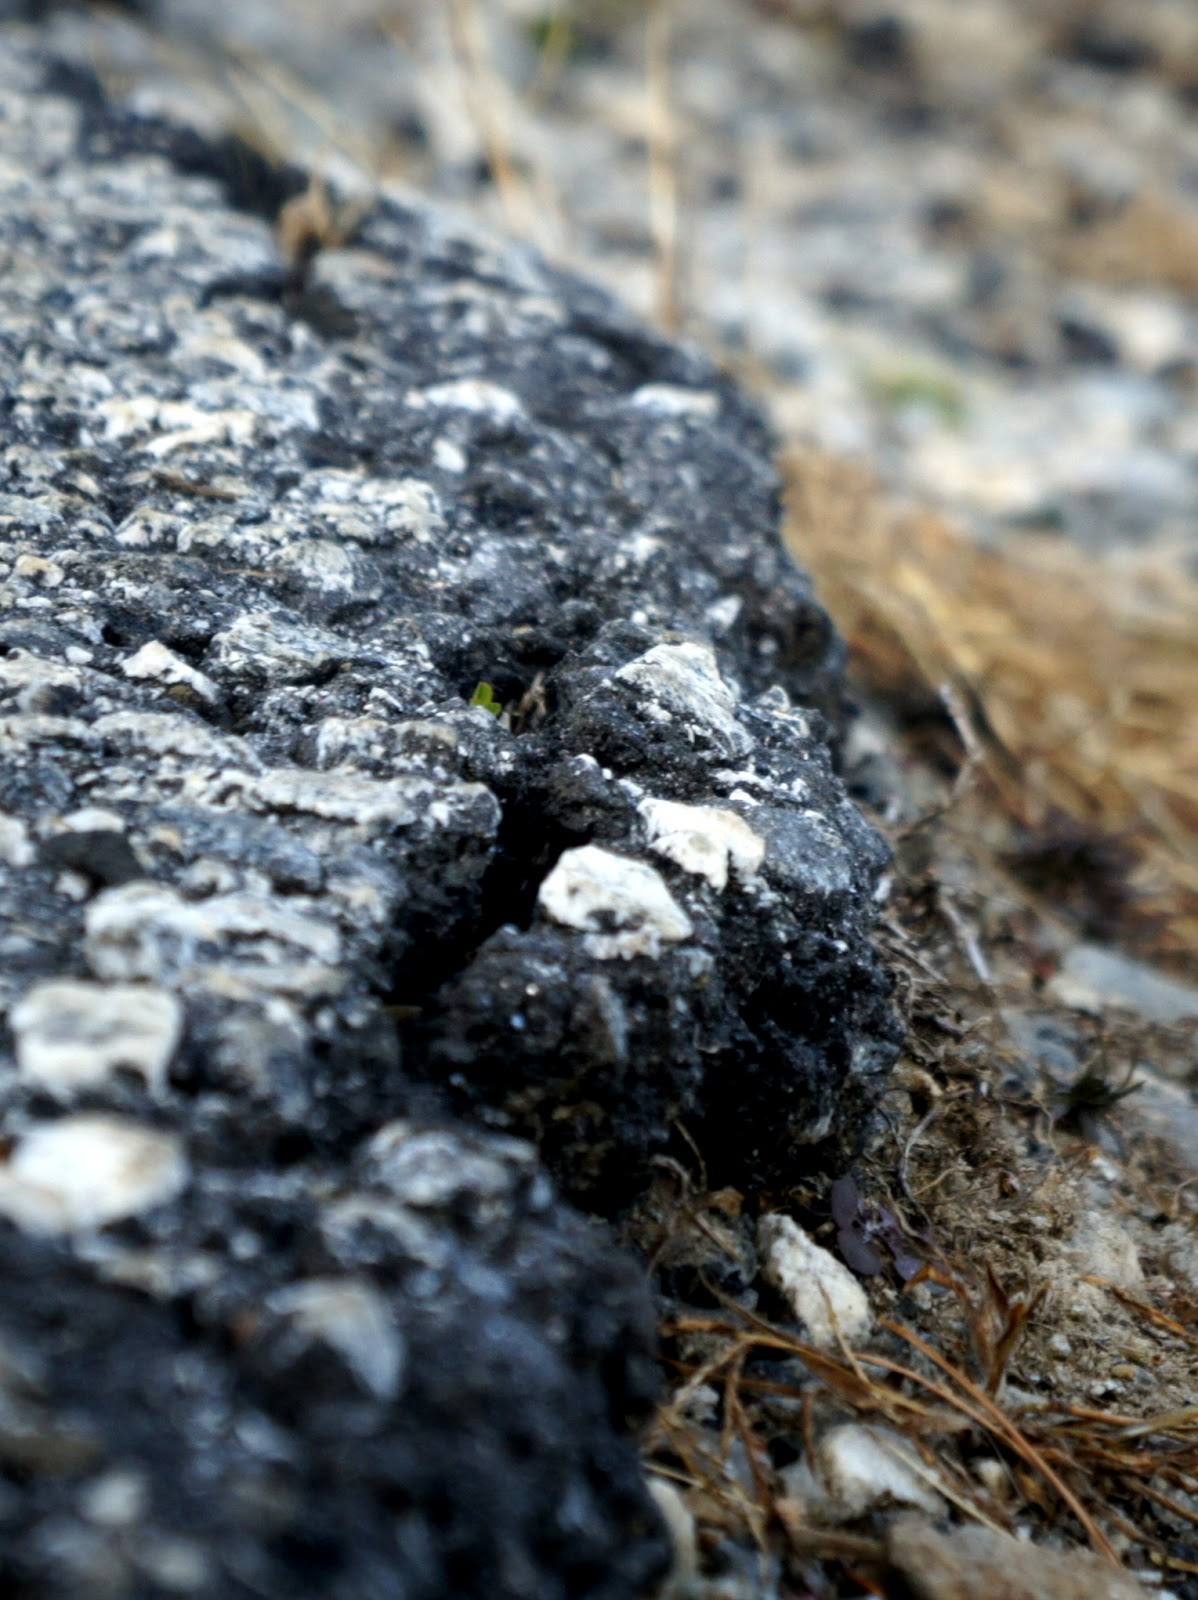 edge of an asphalt road